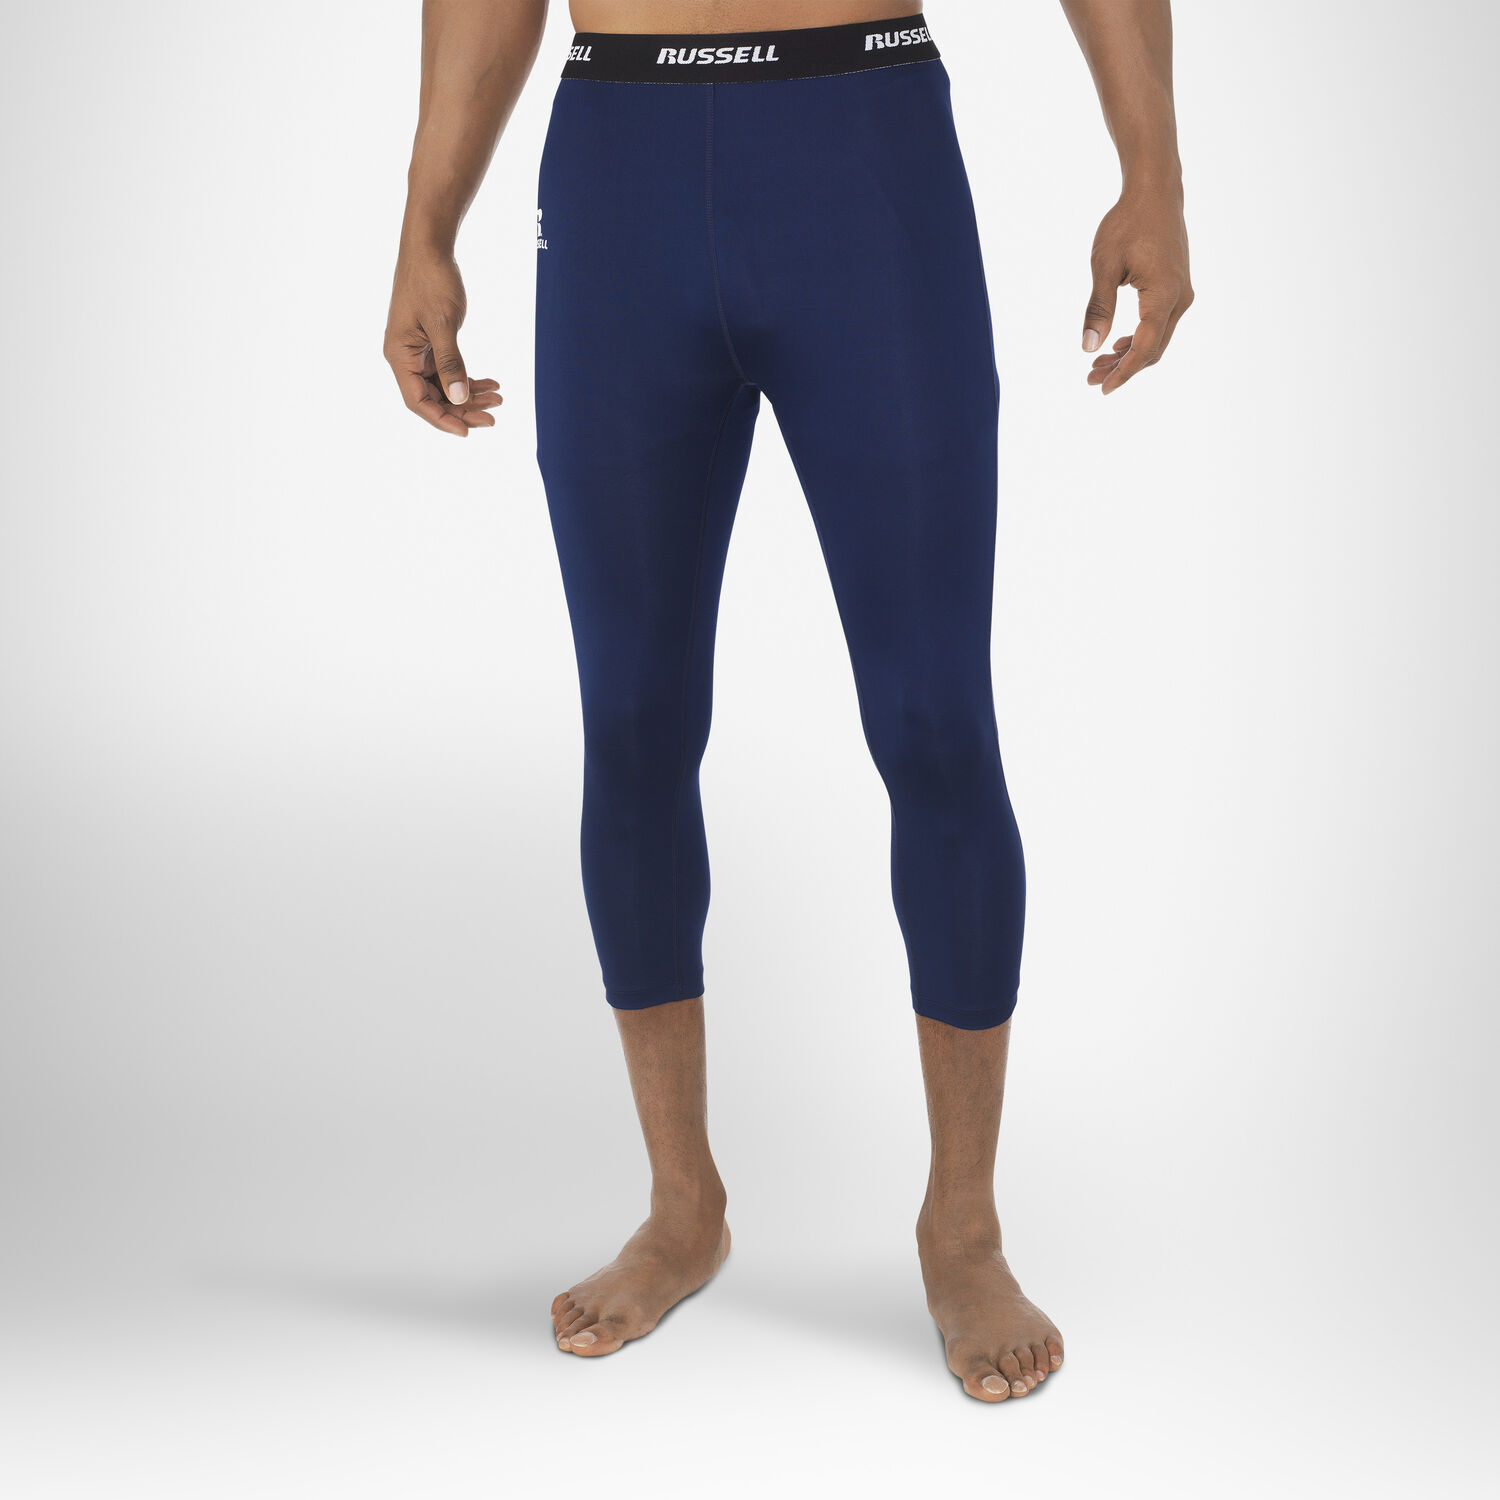 cf2306e3285e2 Men's Dri-Power® 3/4 Compression Tights - Russell US   Russell Athletic